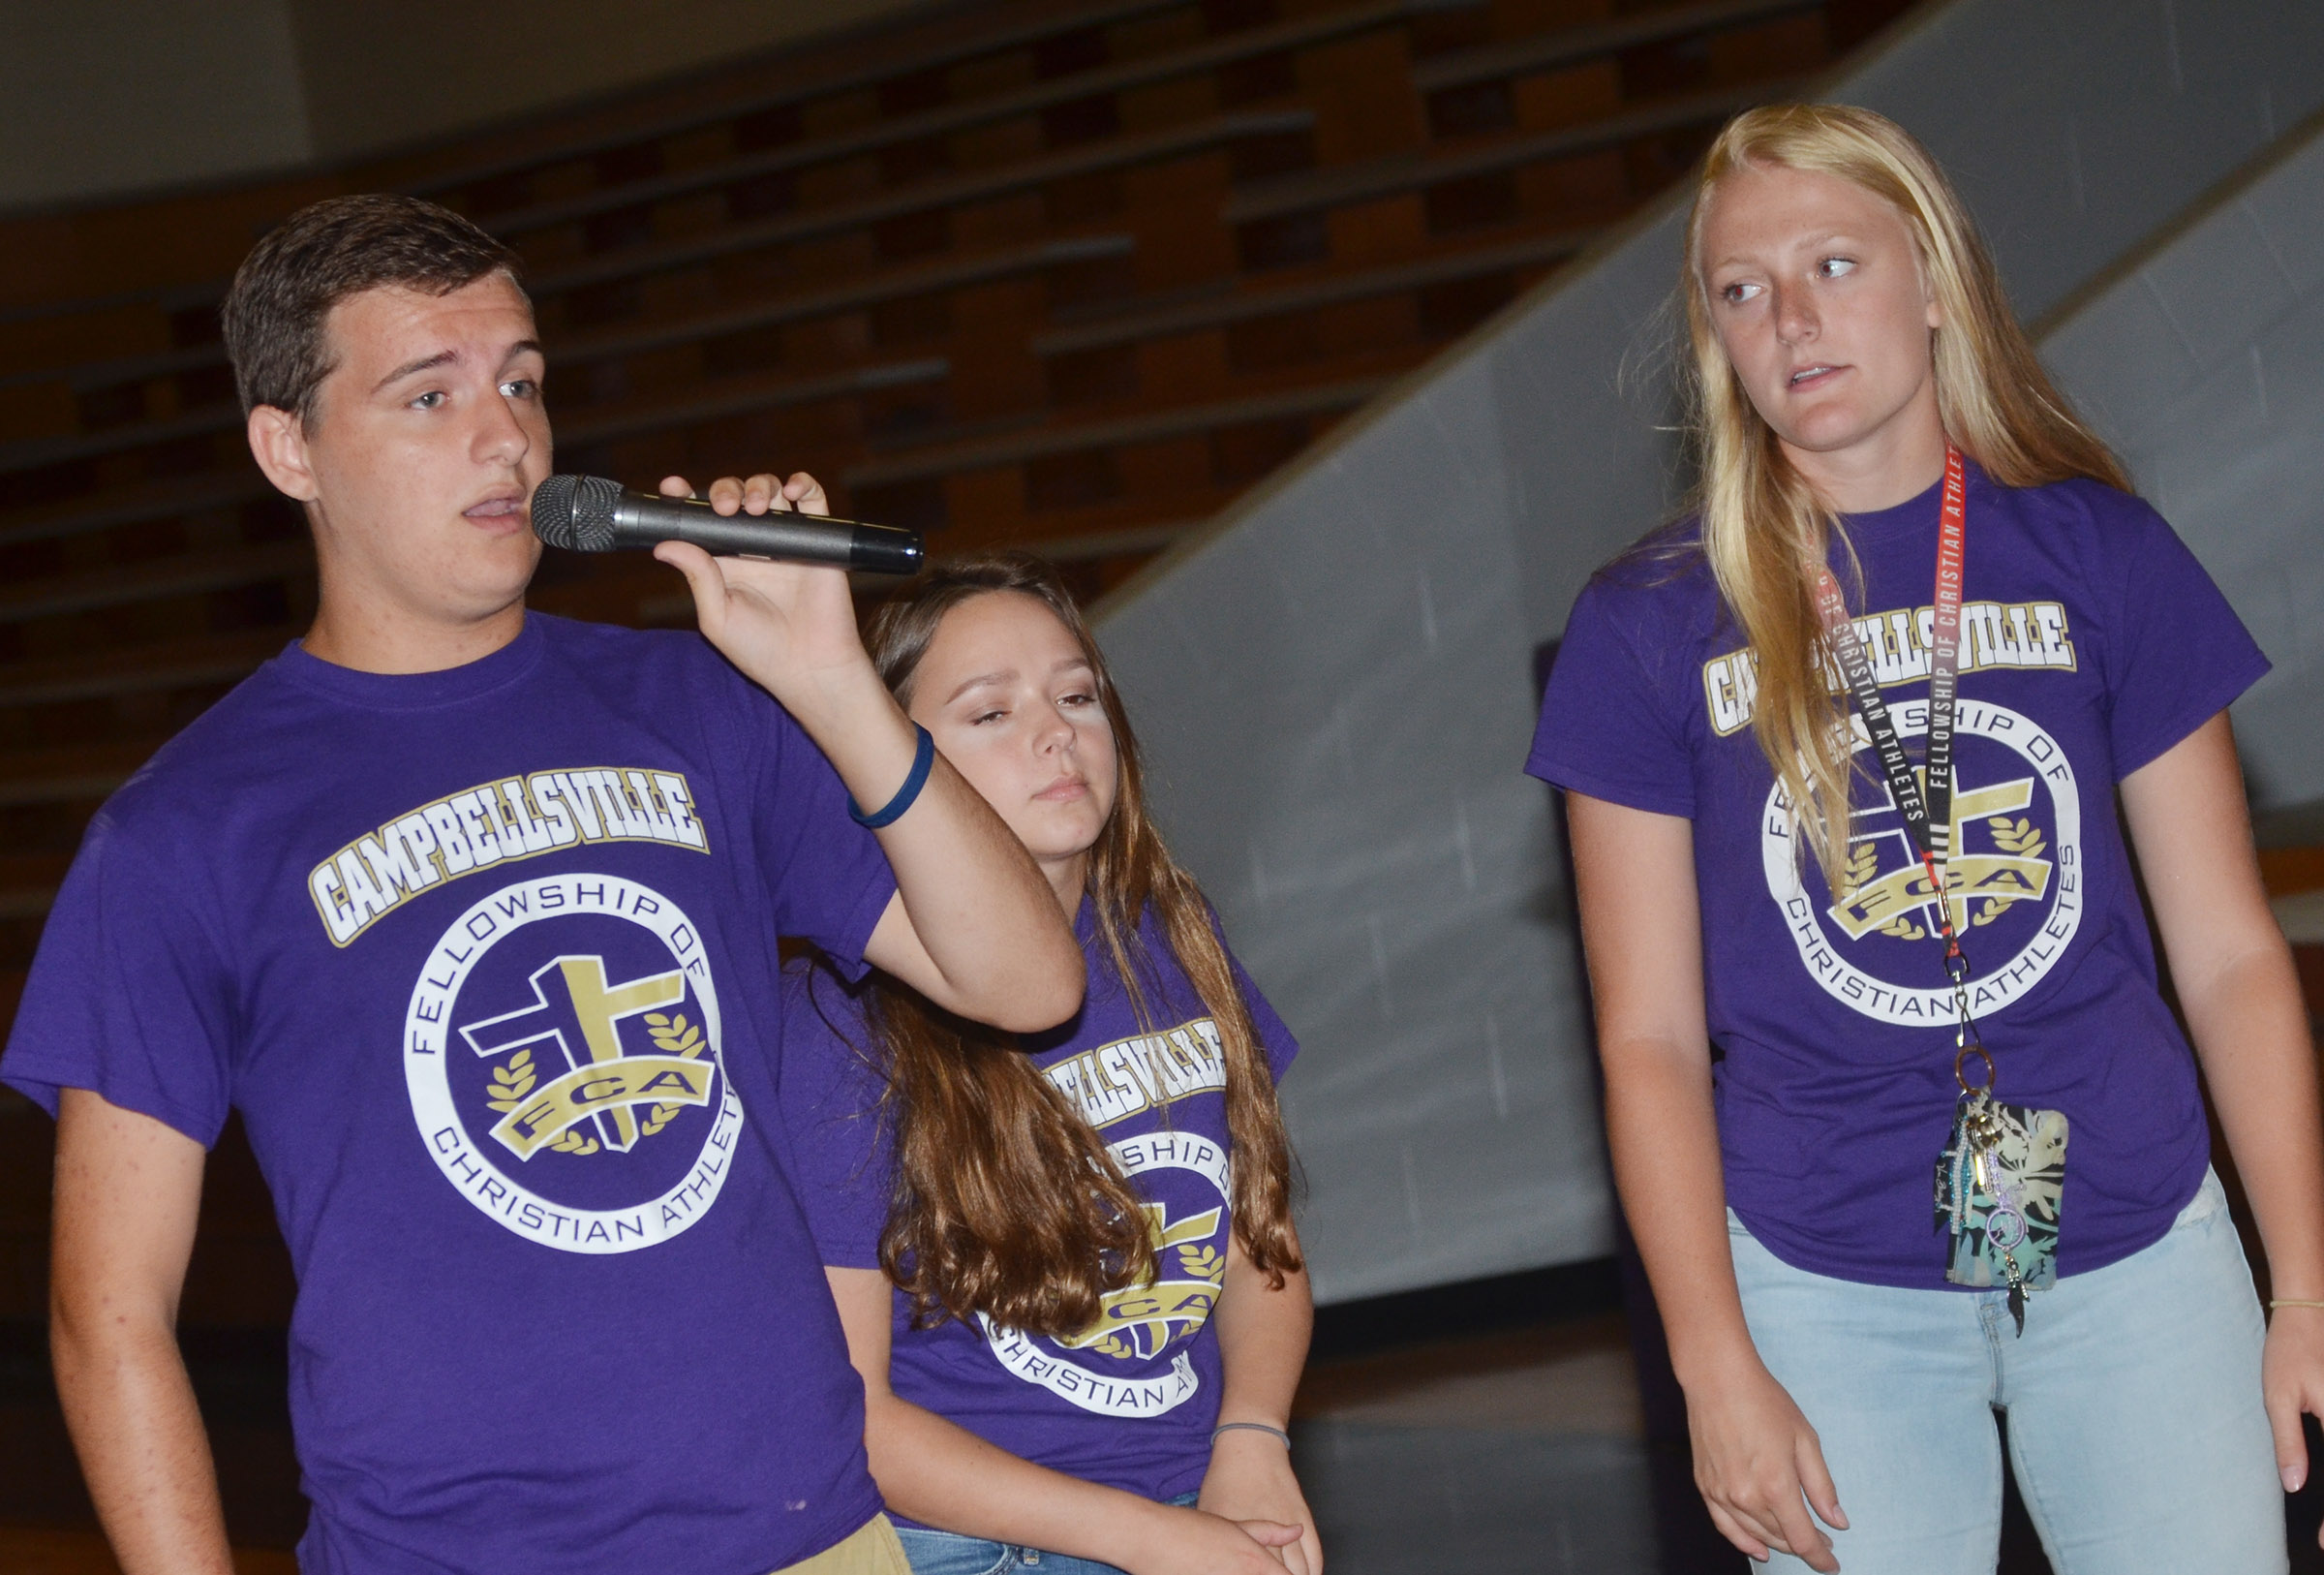 From left, CHS FCA members Austin Fitzgerald, a senior, and juniors Christa Riggs and Abbie Dicken talk to freshmen about joining FCA.